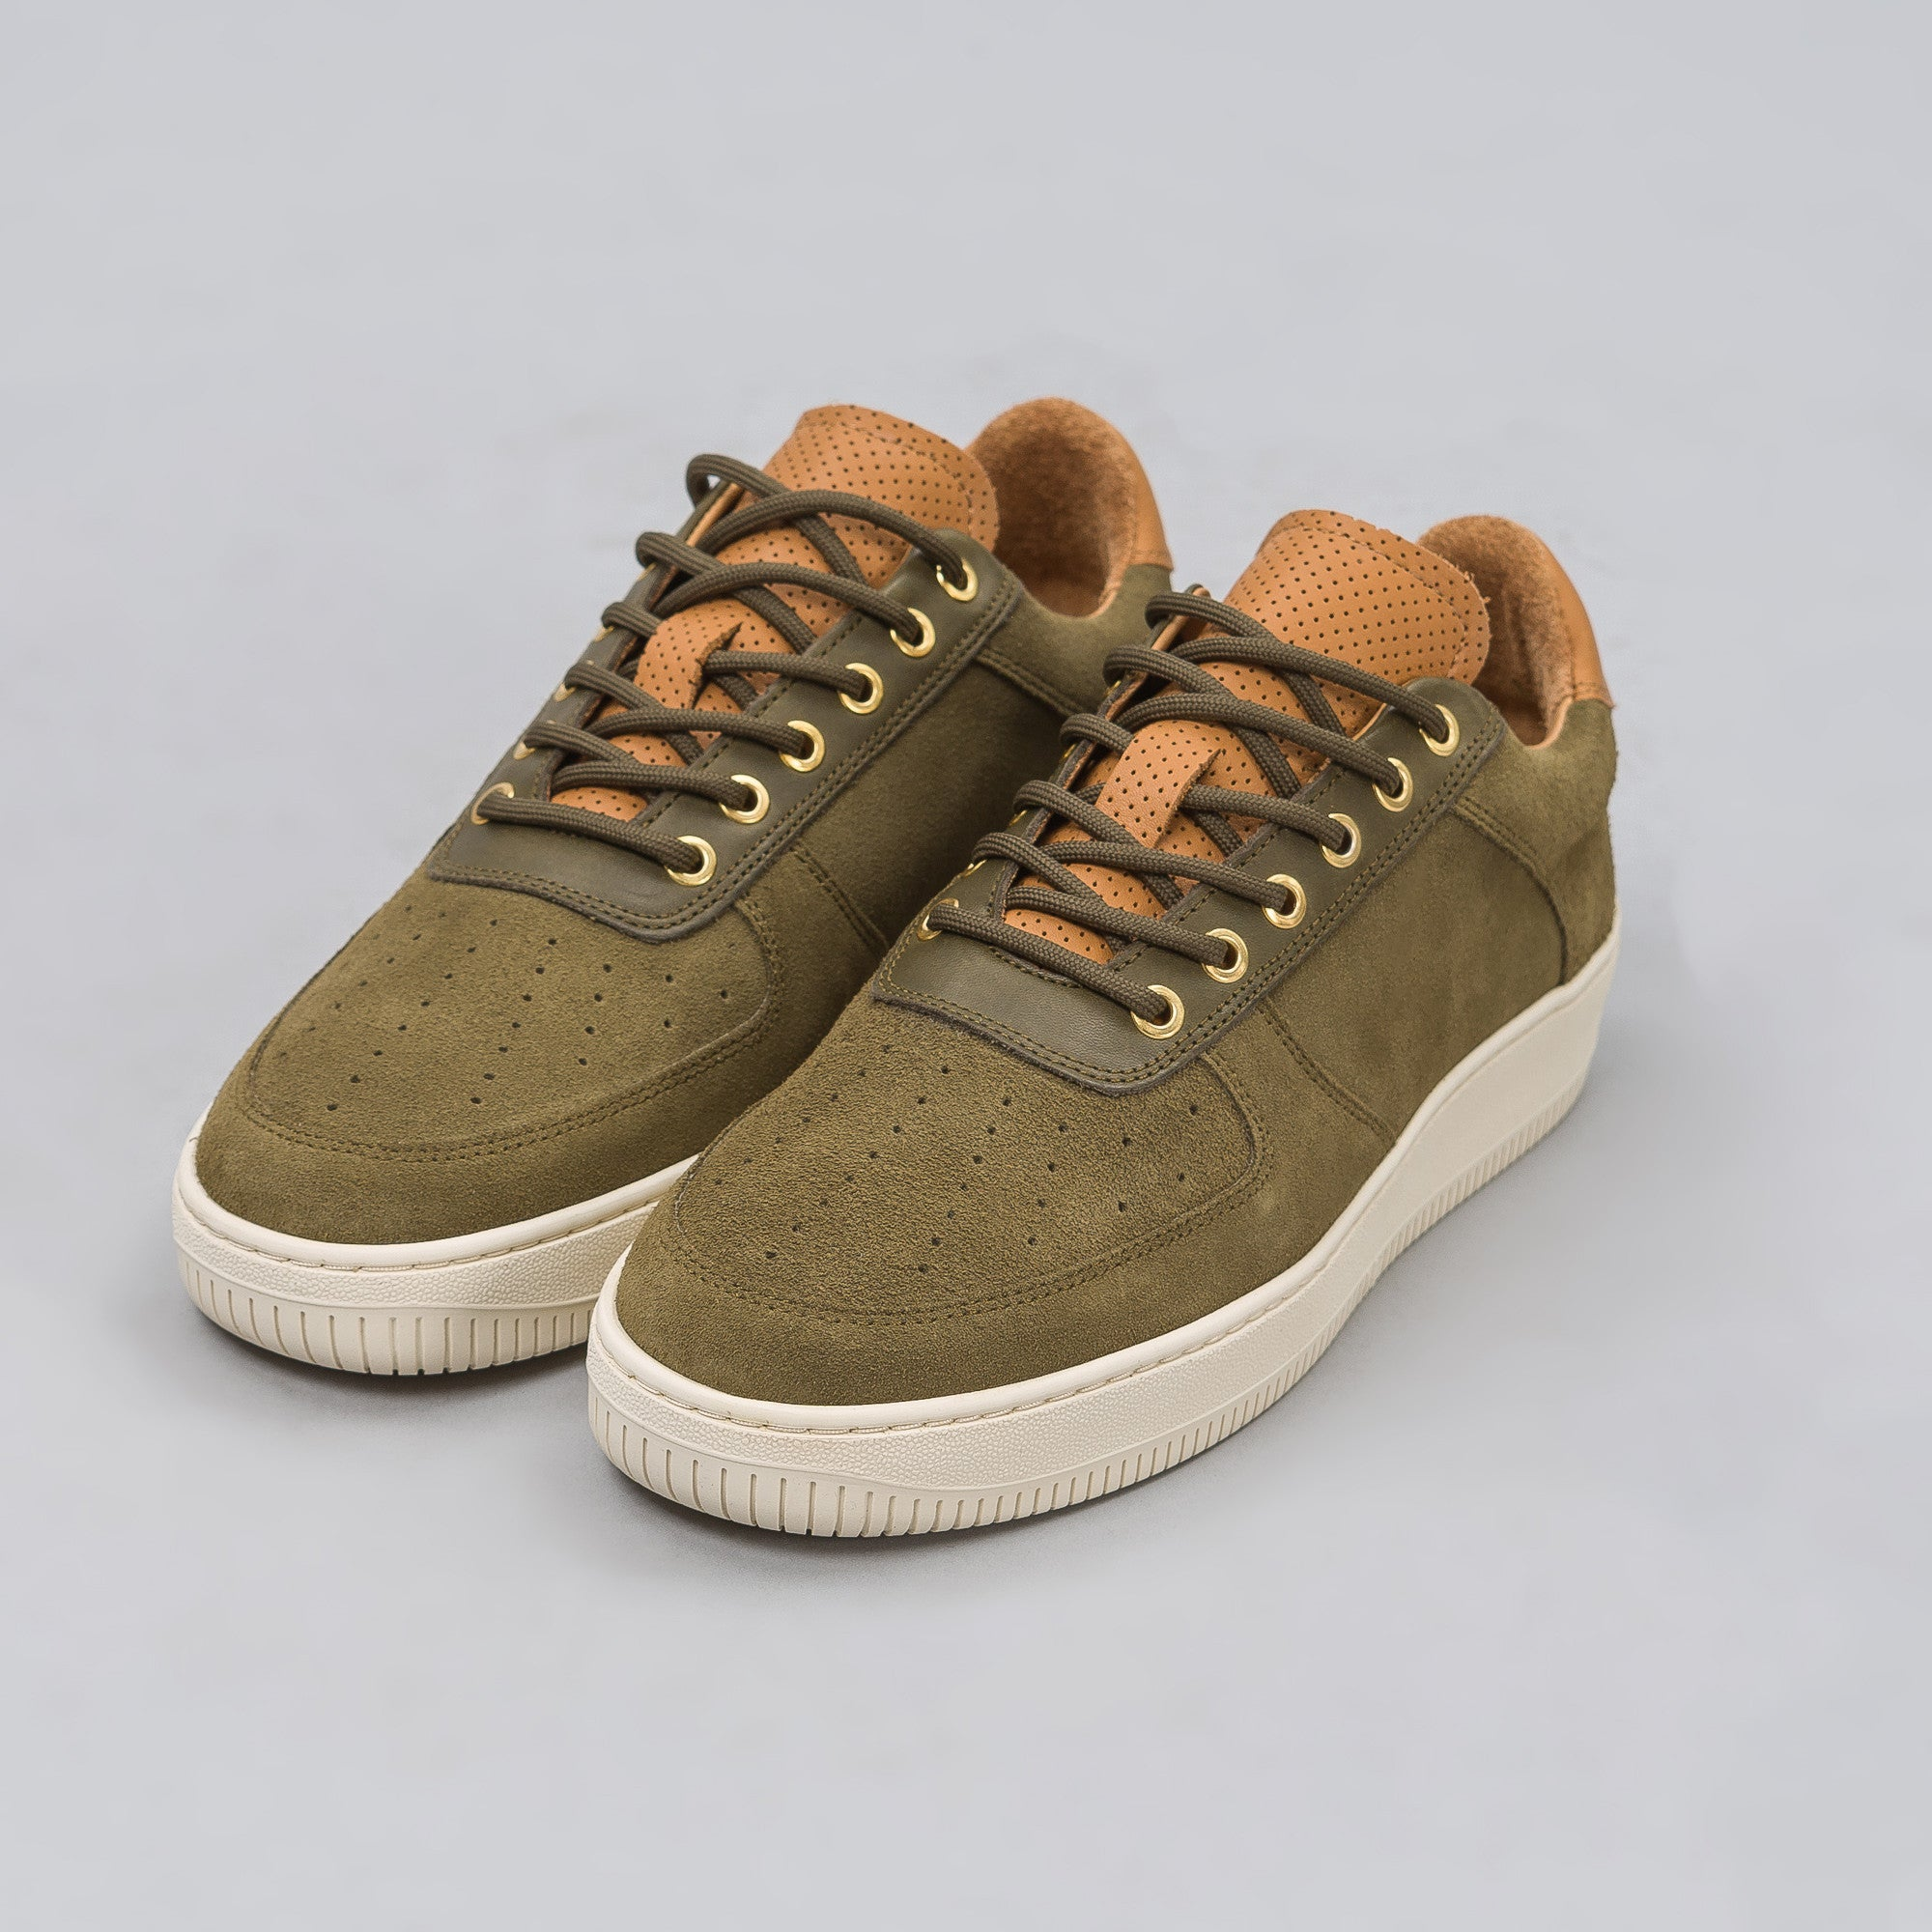 Q14 Low in Olive